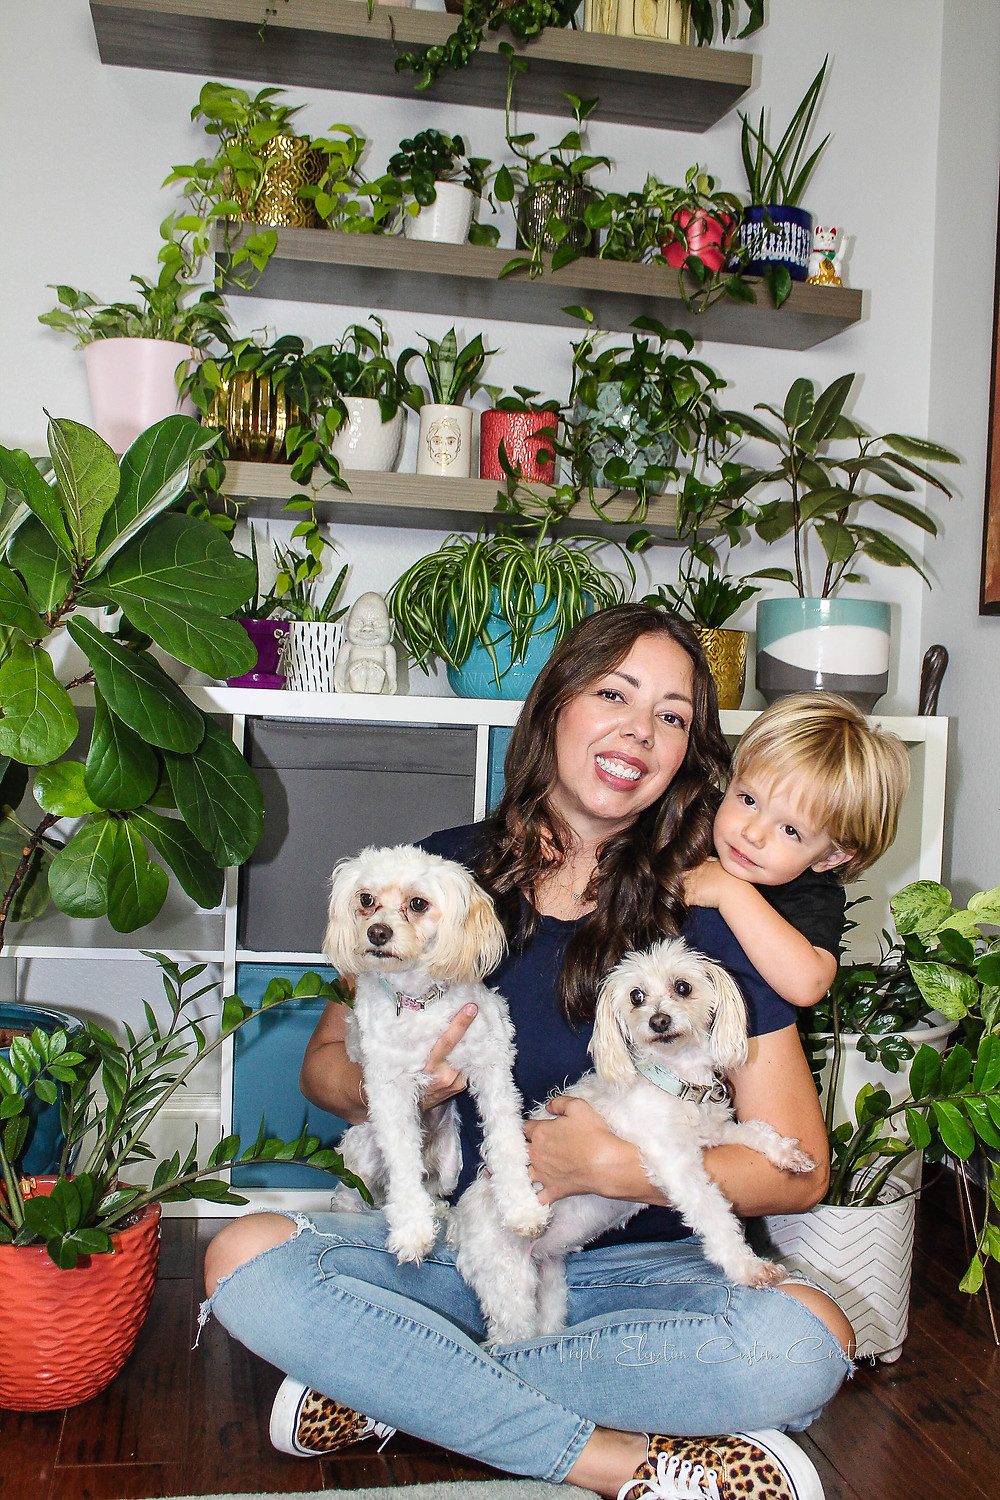 Background of potted plants on shelves with Sarah sitting on the floor holding 2 white fluffy dogs and her toddler son